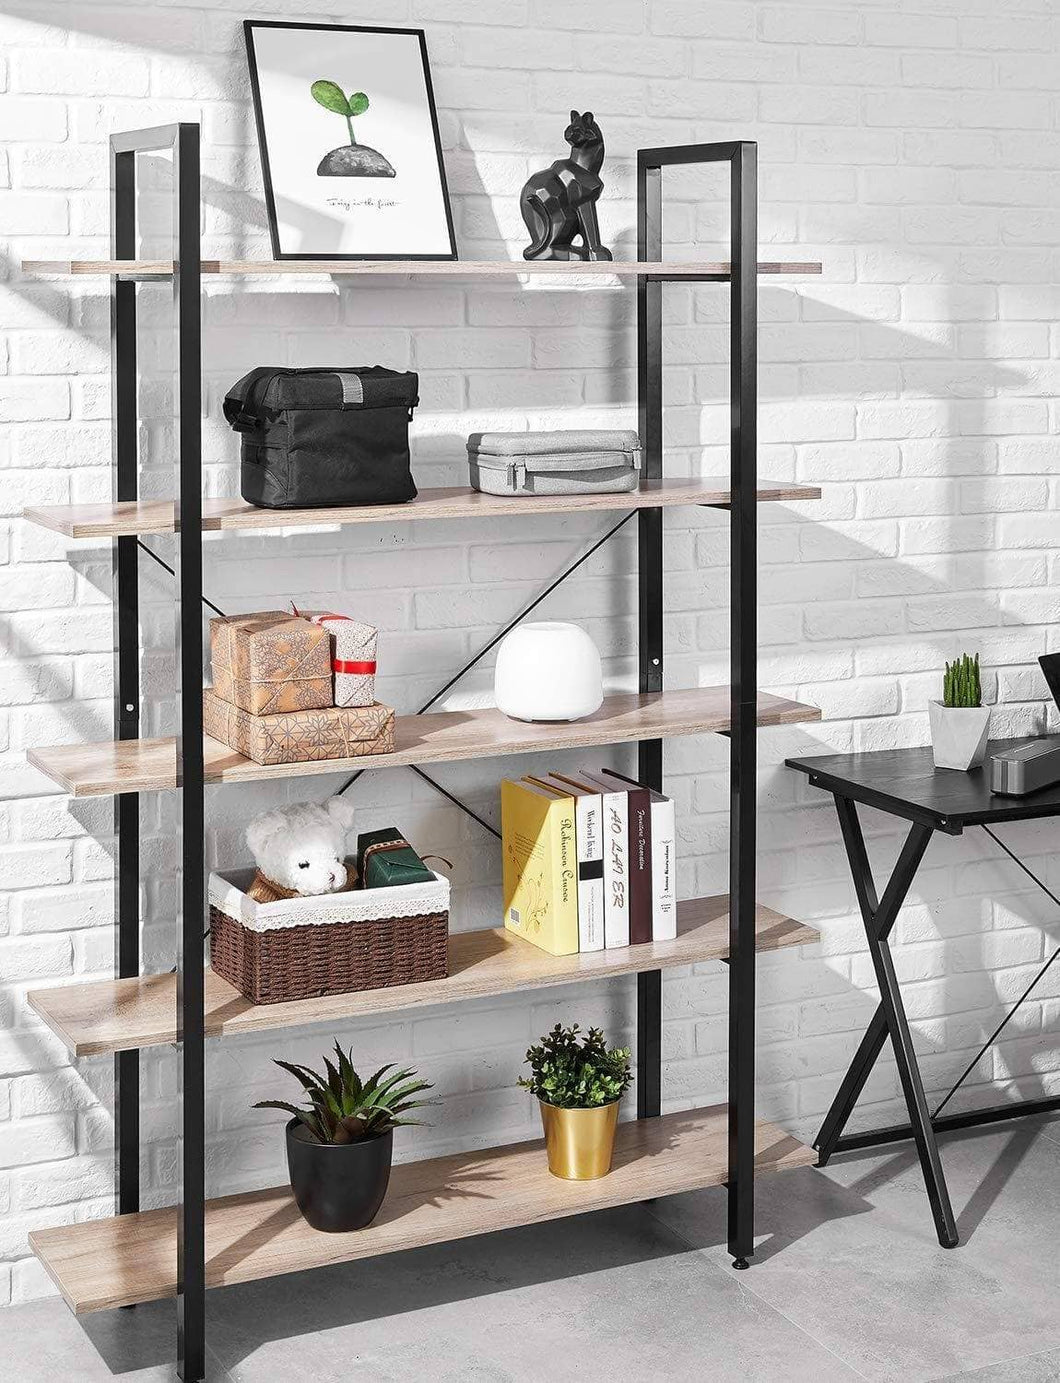 Amazon best oraf bookshelf 5 tier 47lx13wx70h inches bookcase solid 130lbs load capacity industrial bookshelf sturdy bookshelves with steel frame assemble easily storage organizer home office shelf wood grain